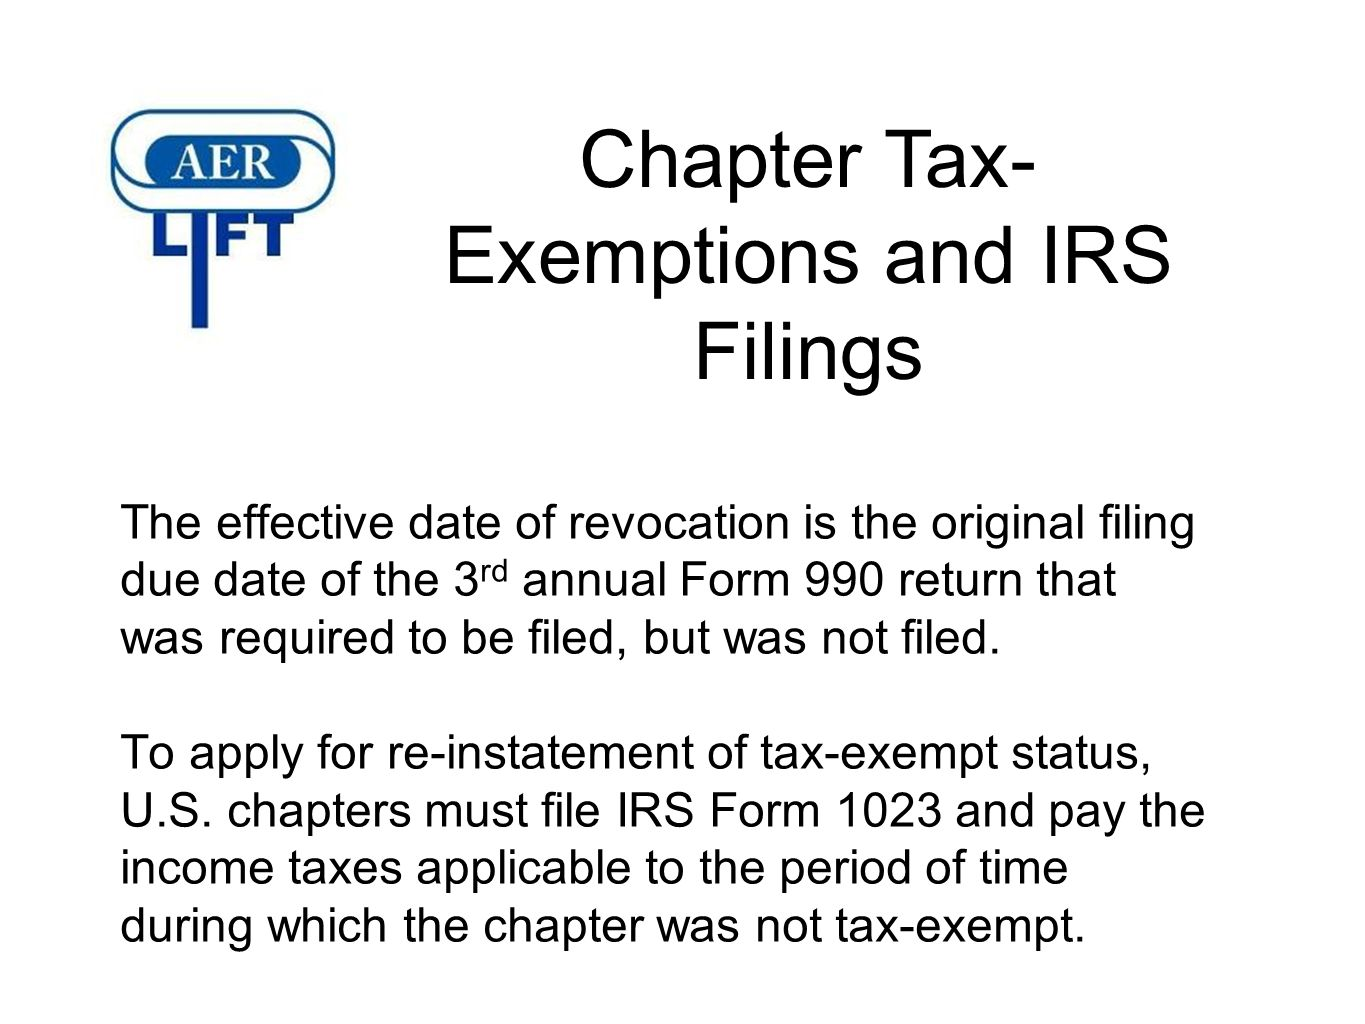 The roles and responsibilities of secretary and treasurer ppt chapter tax exemptions and irs filings falaconquin